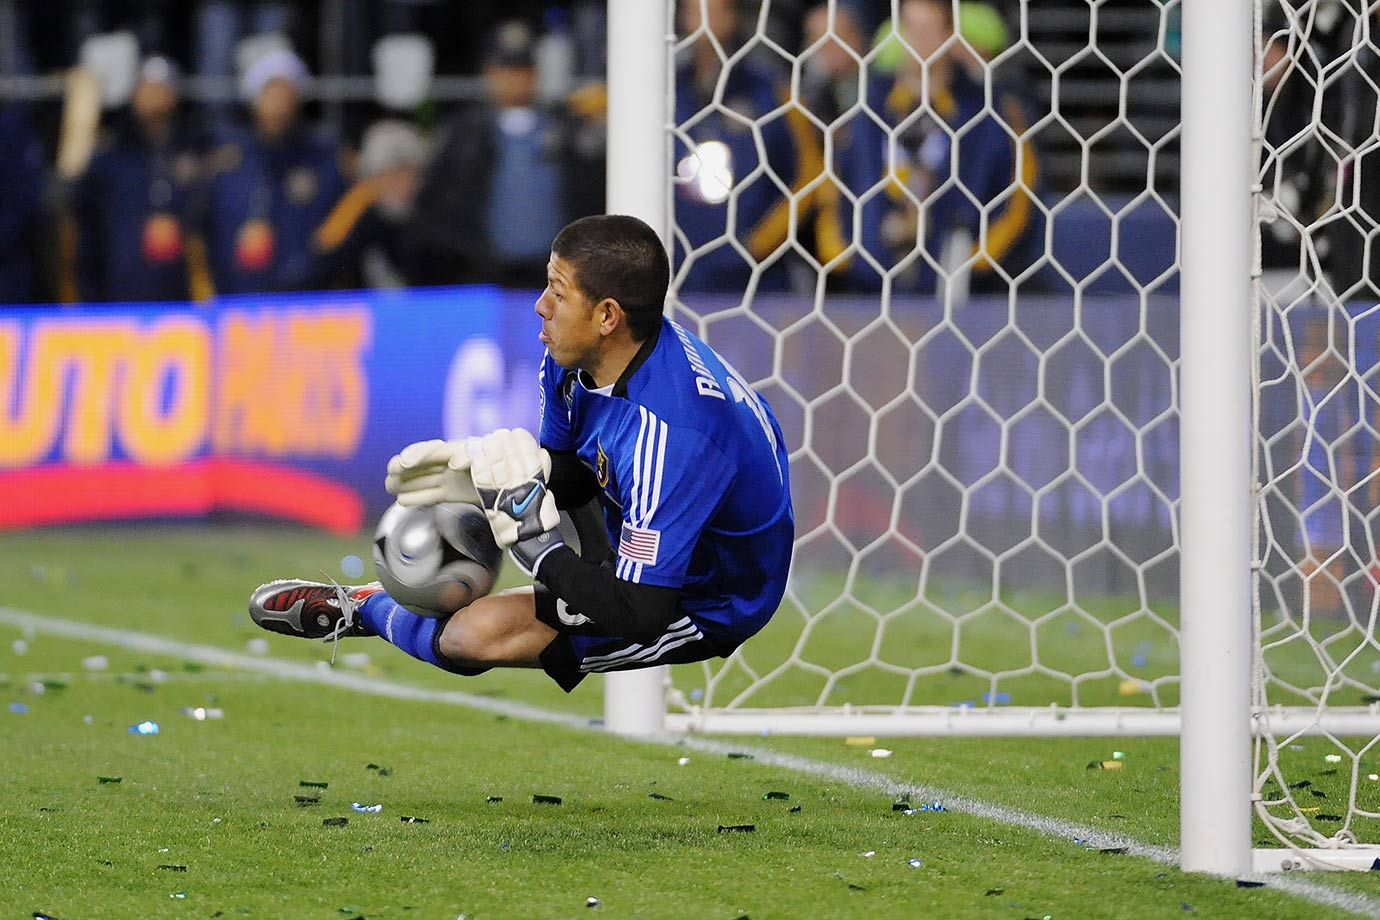 2009 — Real Salt Lake (beat LA Galaxy in penalty kicks after 1-1 draw)